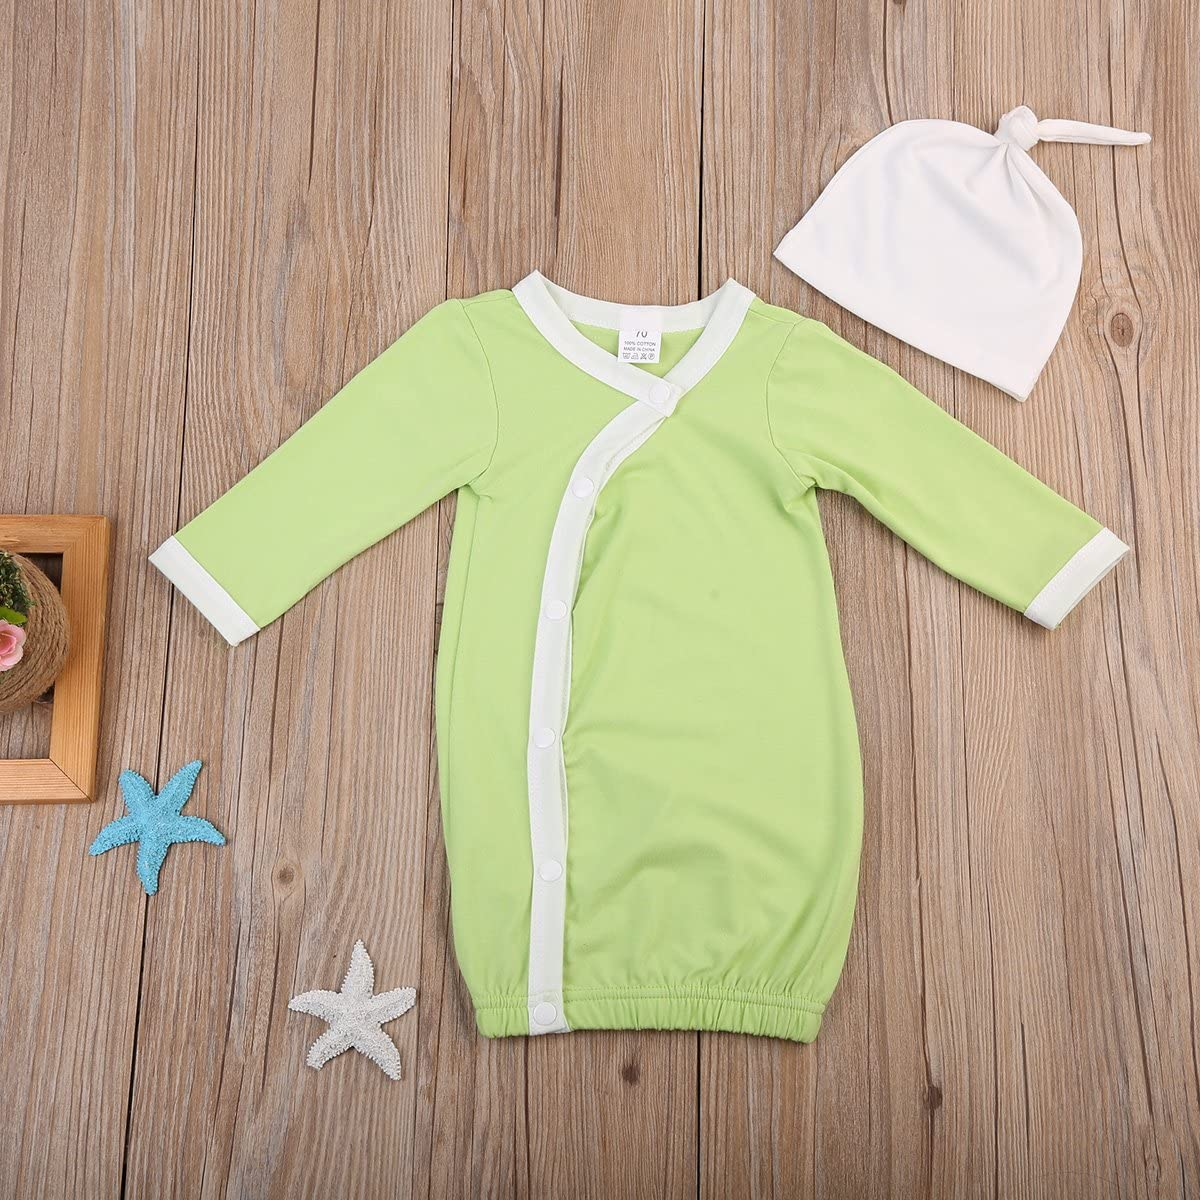 ITFABS Baby Boy Girl Nightgowns Cute Long Sleeve Cotton Pajamas Sleeper Wear with Hat